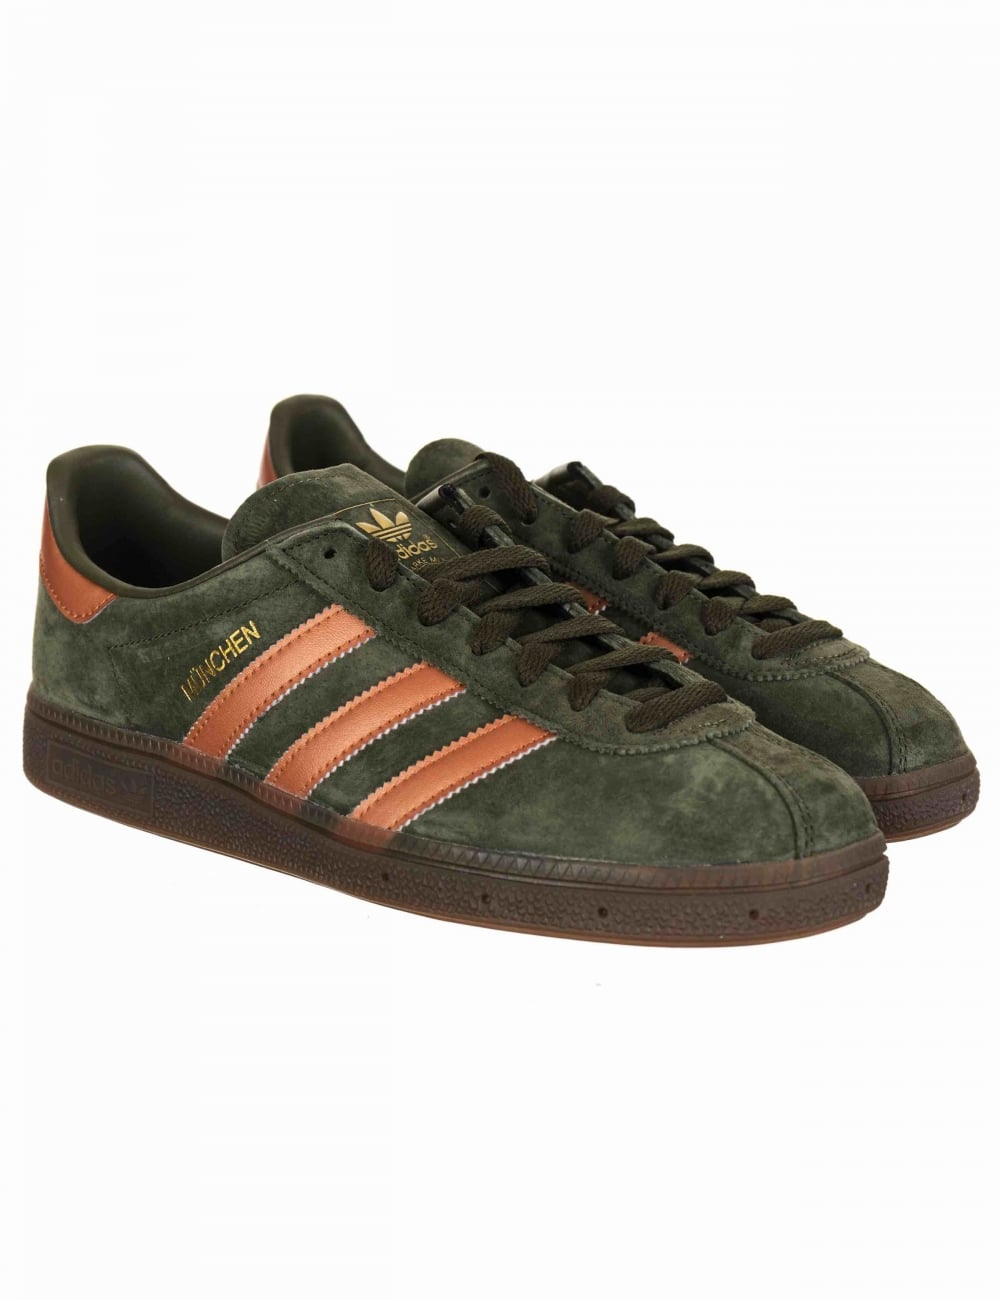 8a46622a660f Adidas Originals Munchen Shoes - Night Cargo Bronze - Footwear from ...